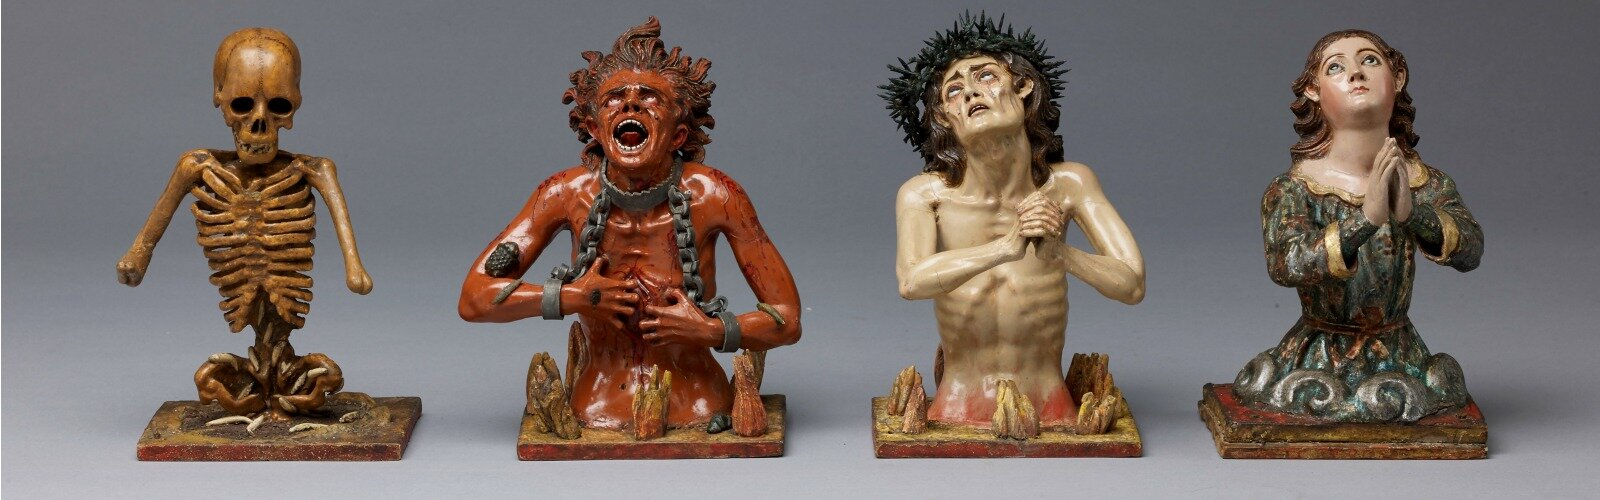 "Attributed to Manuel Chili, called Caspicara (circa 1723–1796), Ecuador, ""The Four Fates of Man: Death, Hell, Purgatory and Heaven,"" circa 1775, polychromed wood, glass and metal, Courtesy of The Hispanic Society of America, New York."